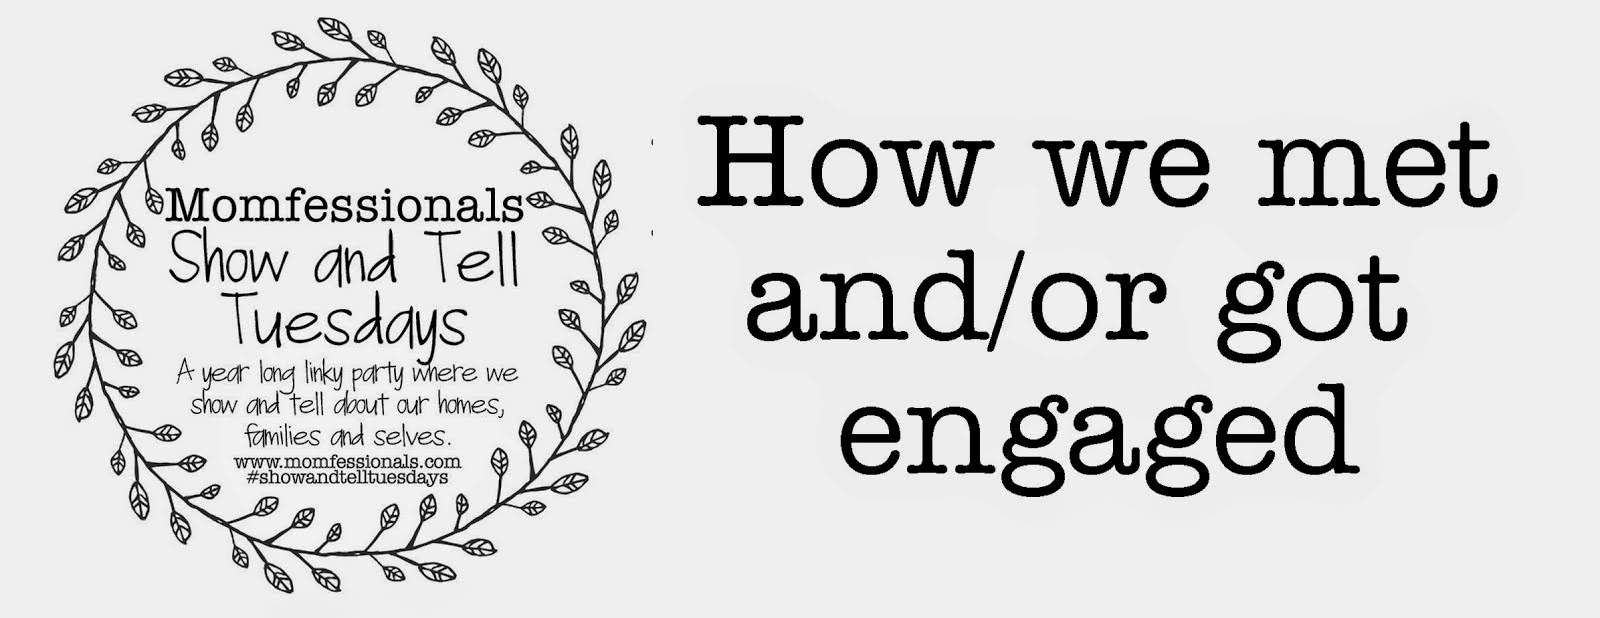 how i met my spouse